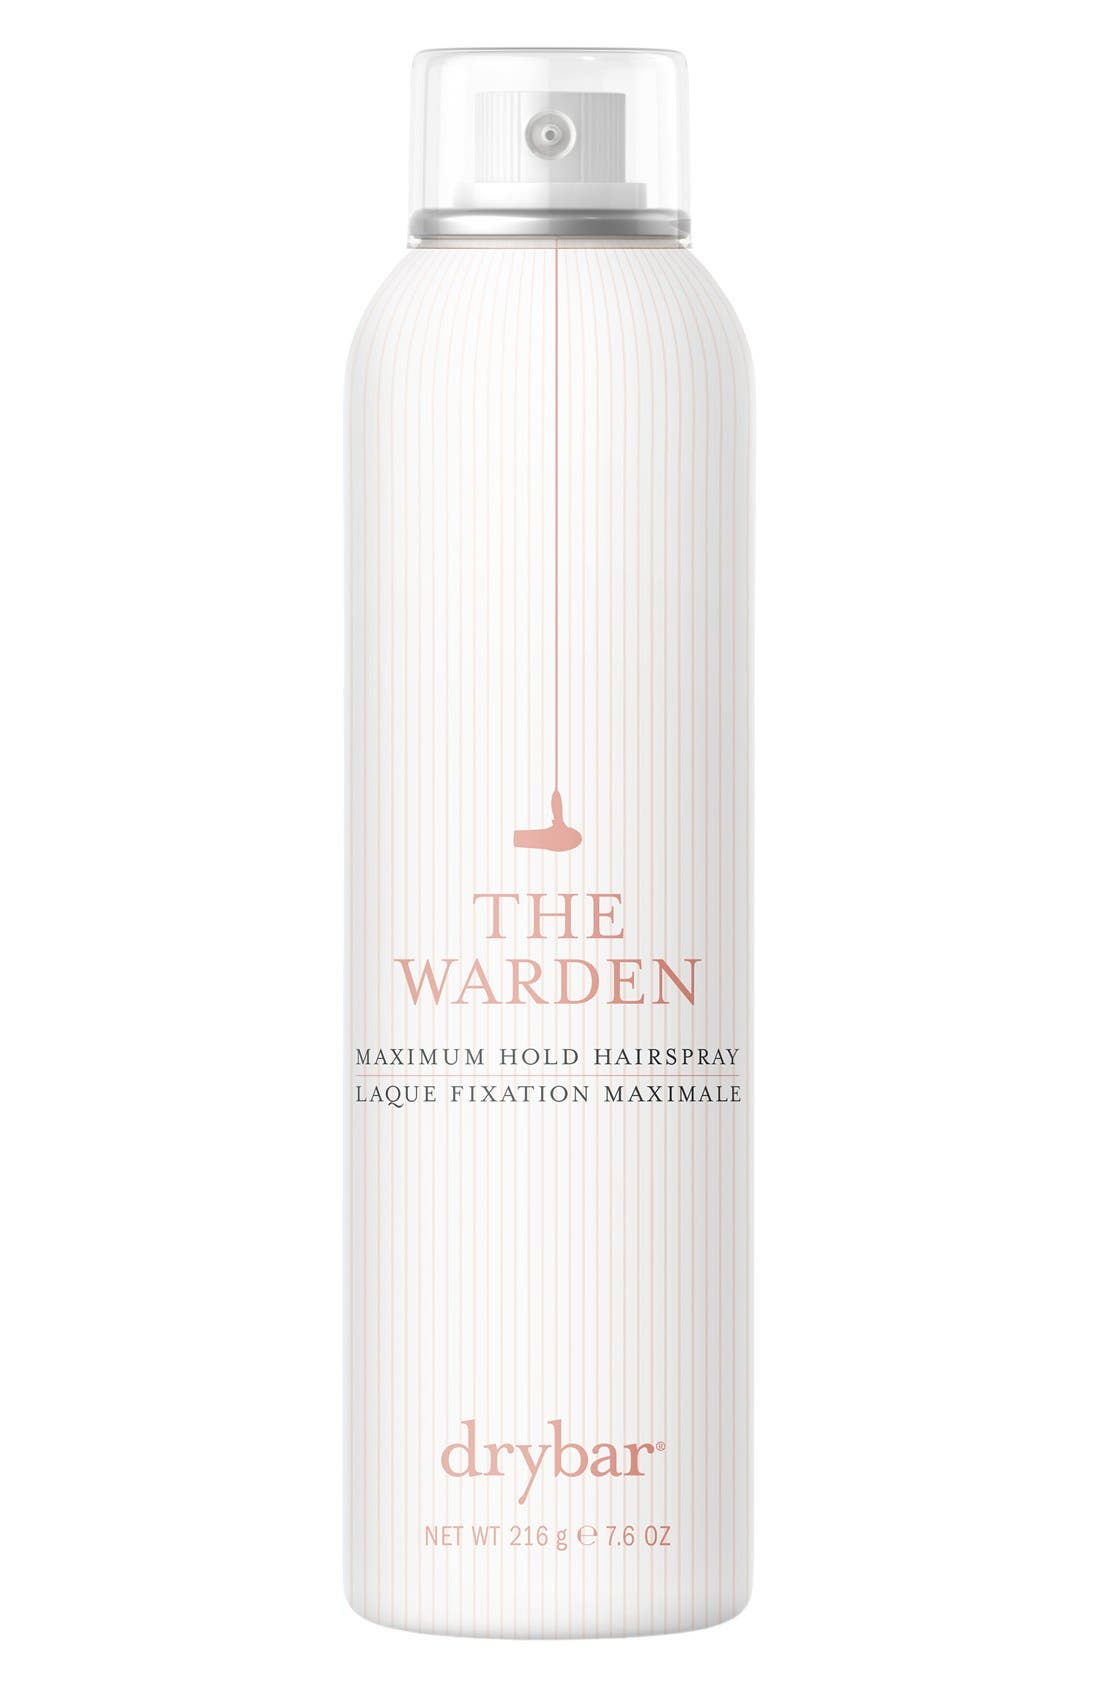 Drybar 'The Warden' Maximum Hold Hairspray